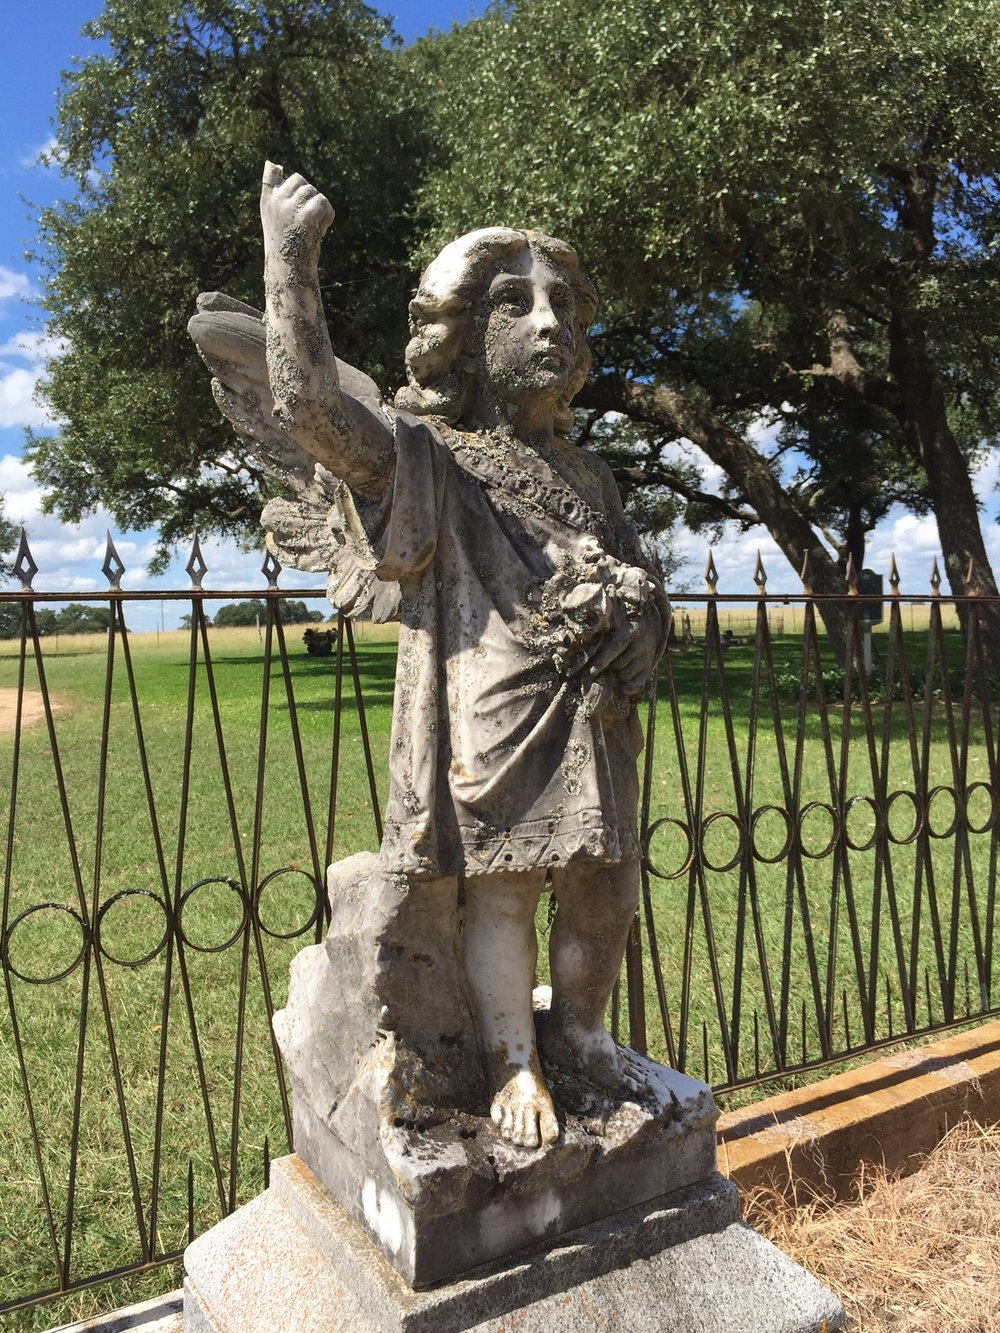 A beautiful angel monument greets visitors near the front of the cemetery